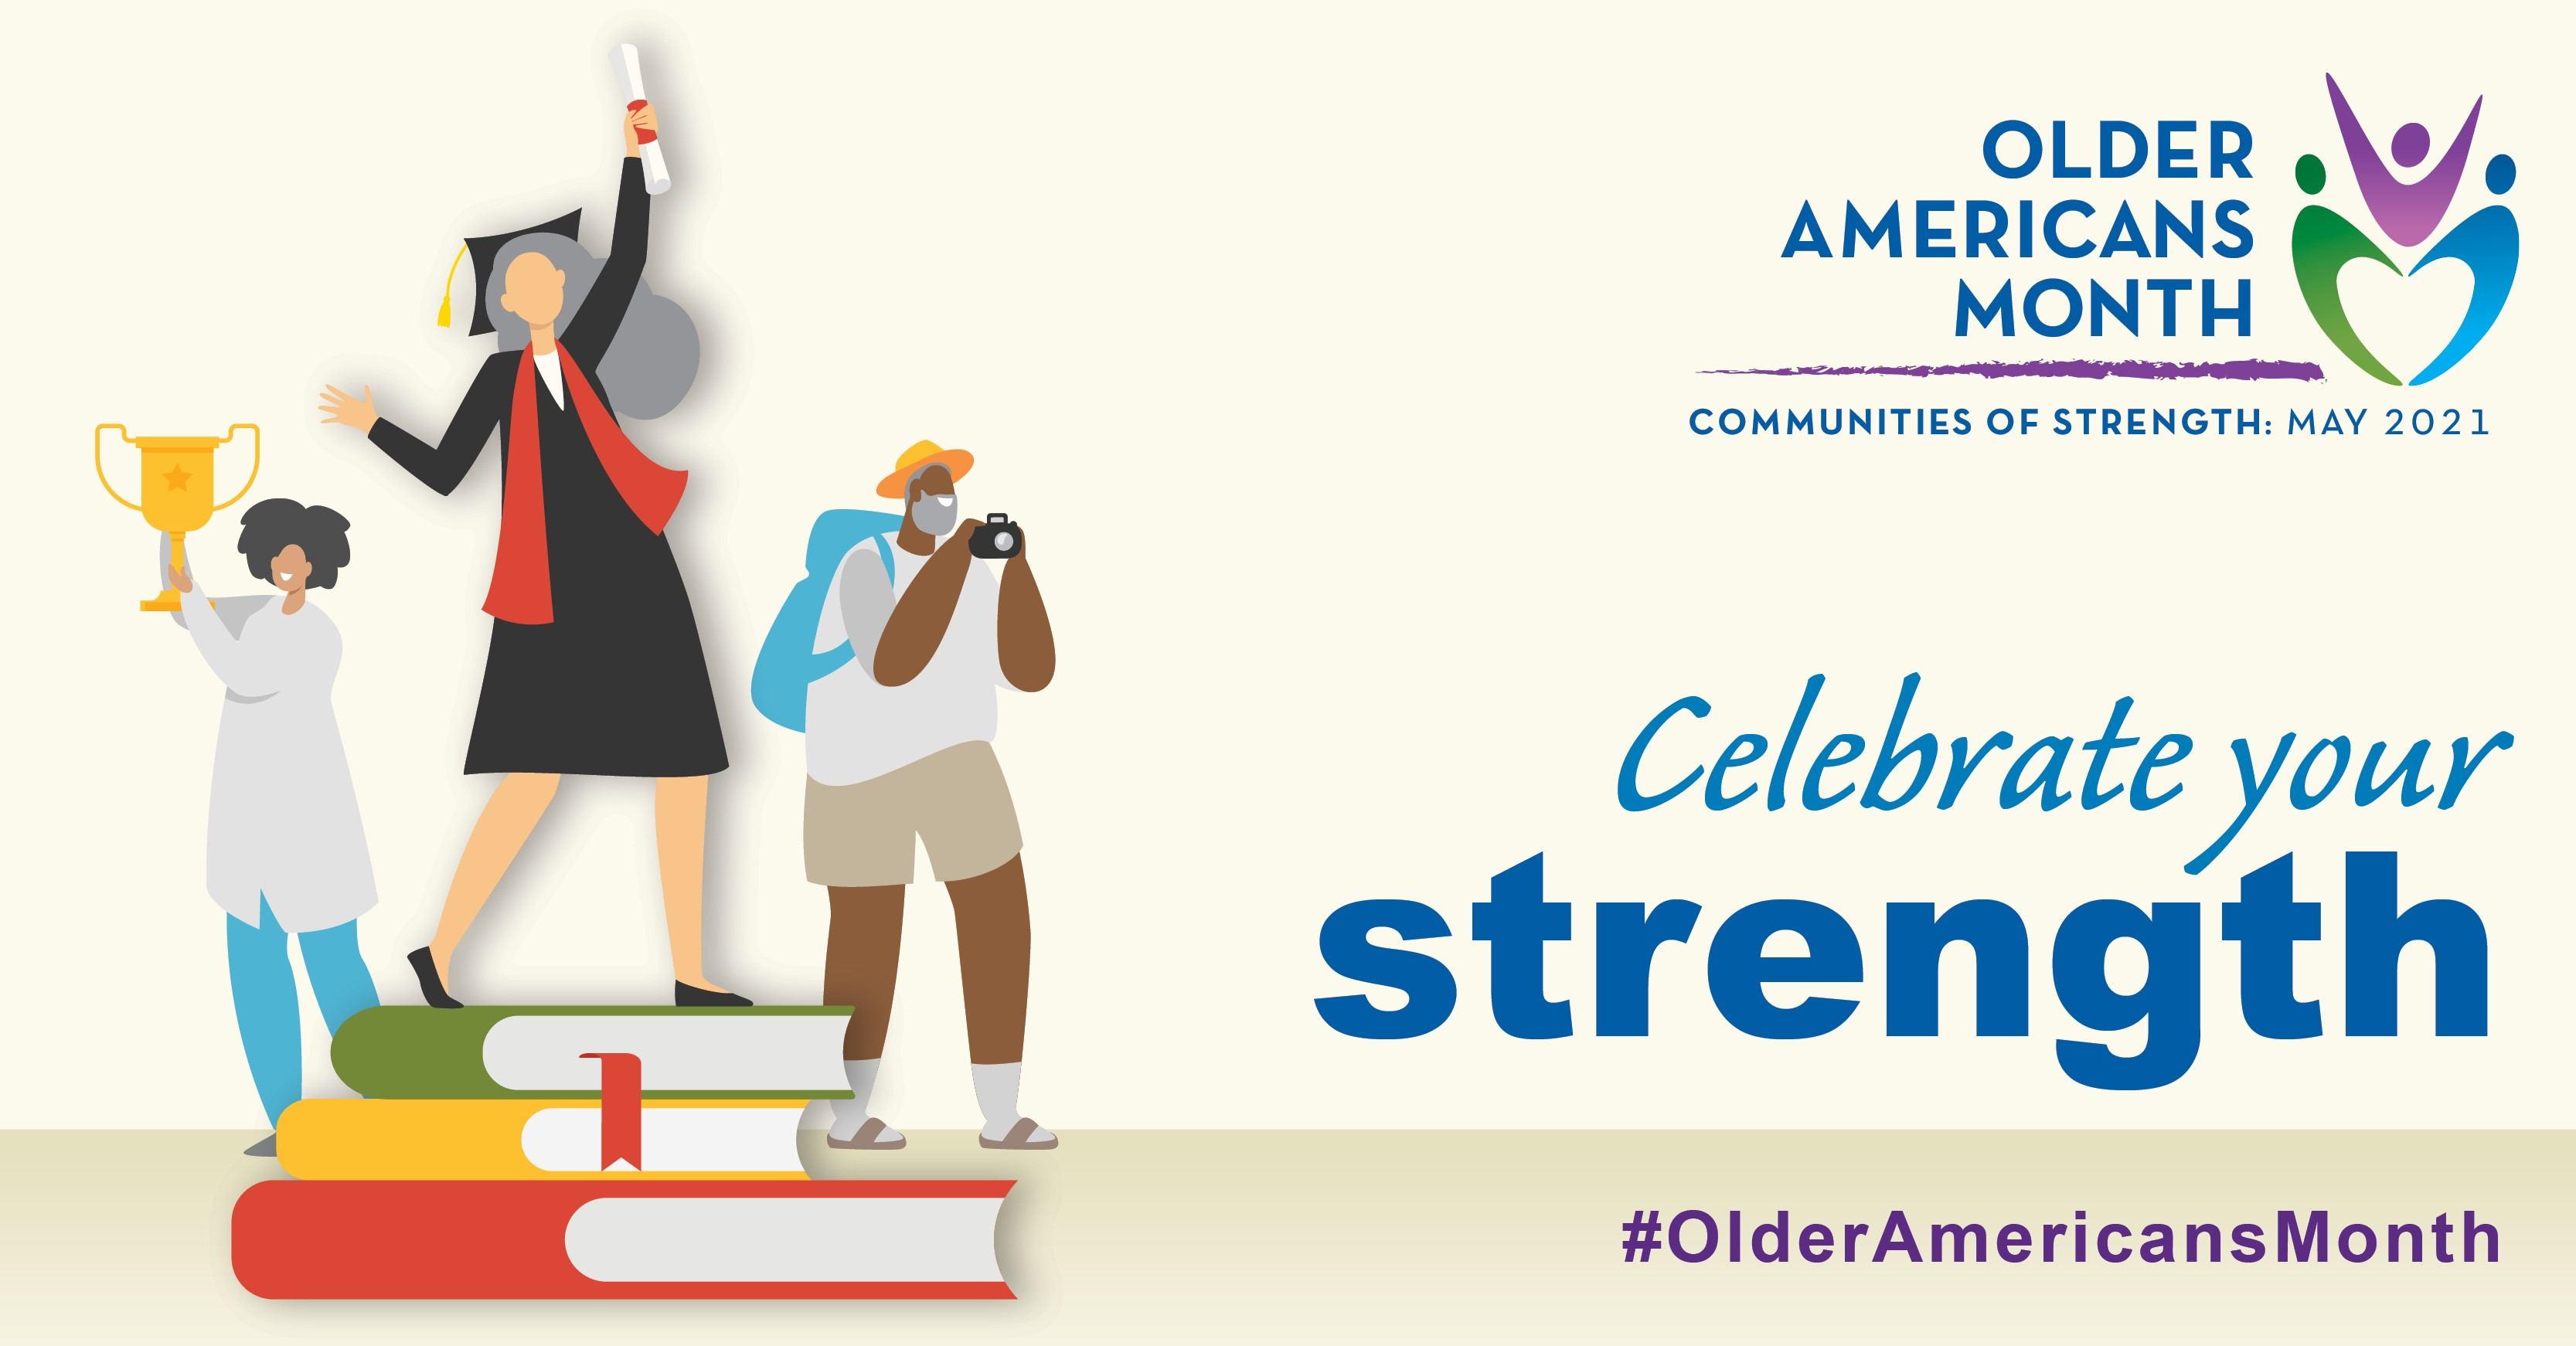 Social Media Graphic: Celebrate Your Strength #OlderAmericansMonth